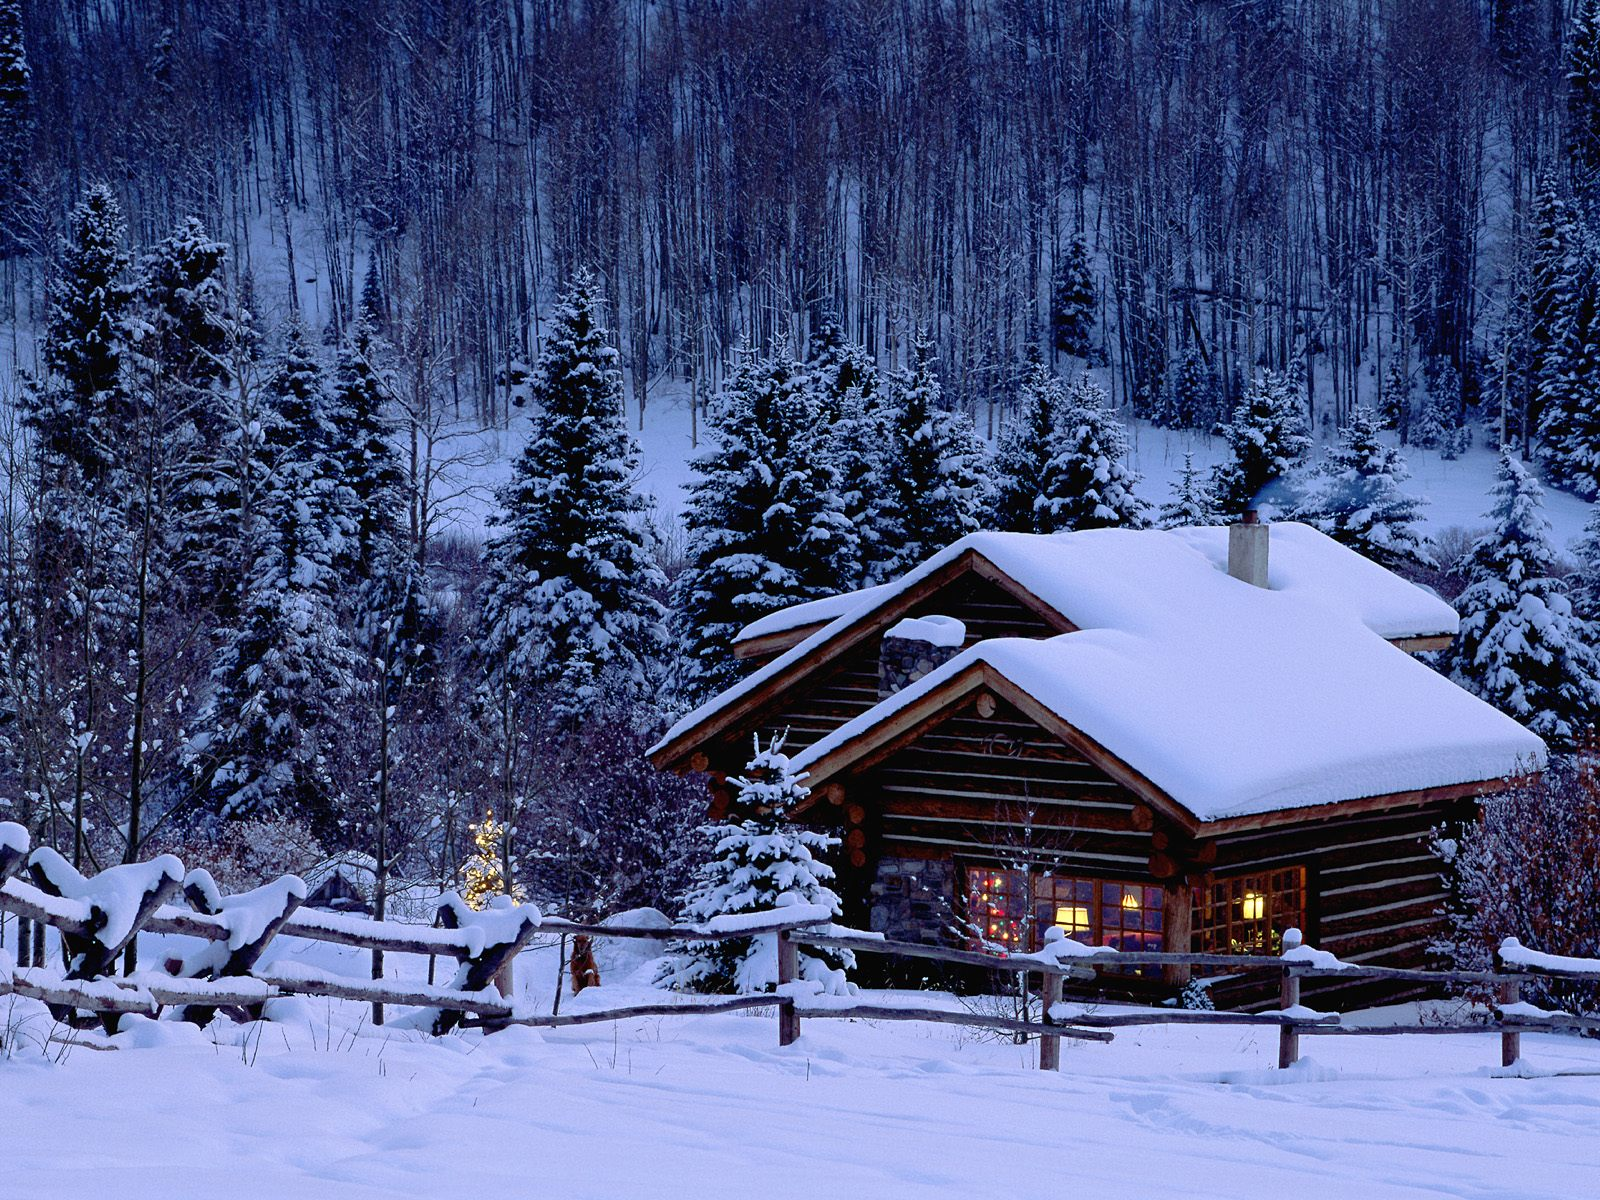 Winter Wallpaper HD For DesktopComputer Wallpaper 1600x1200